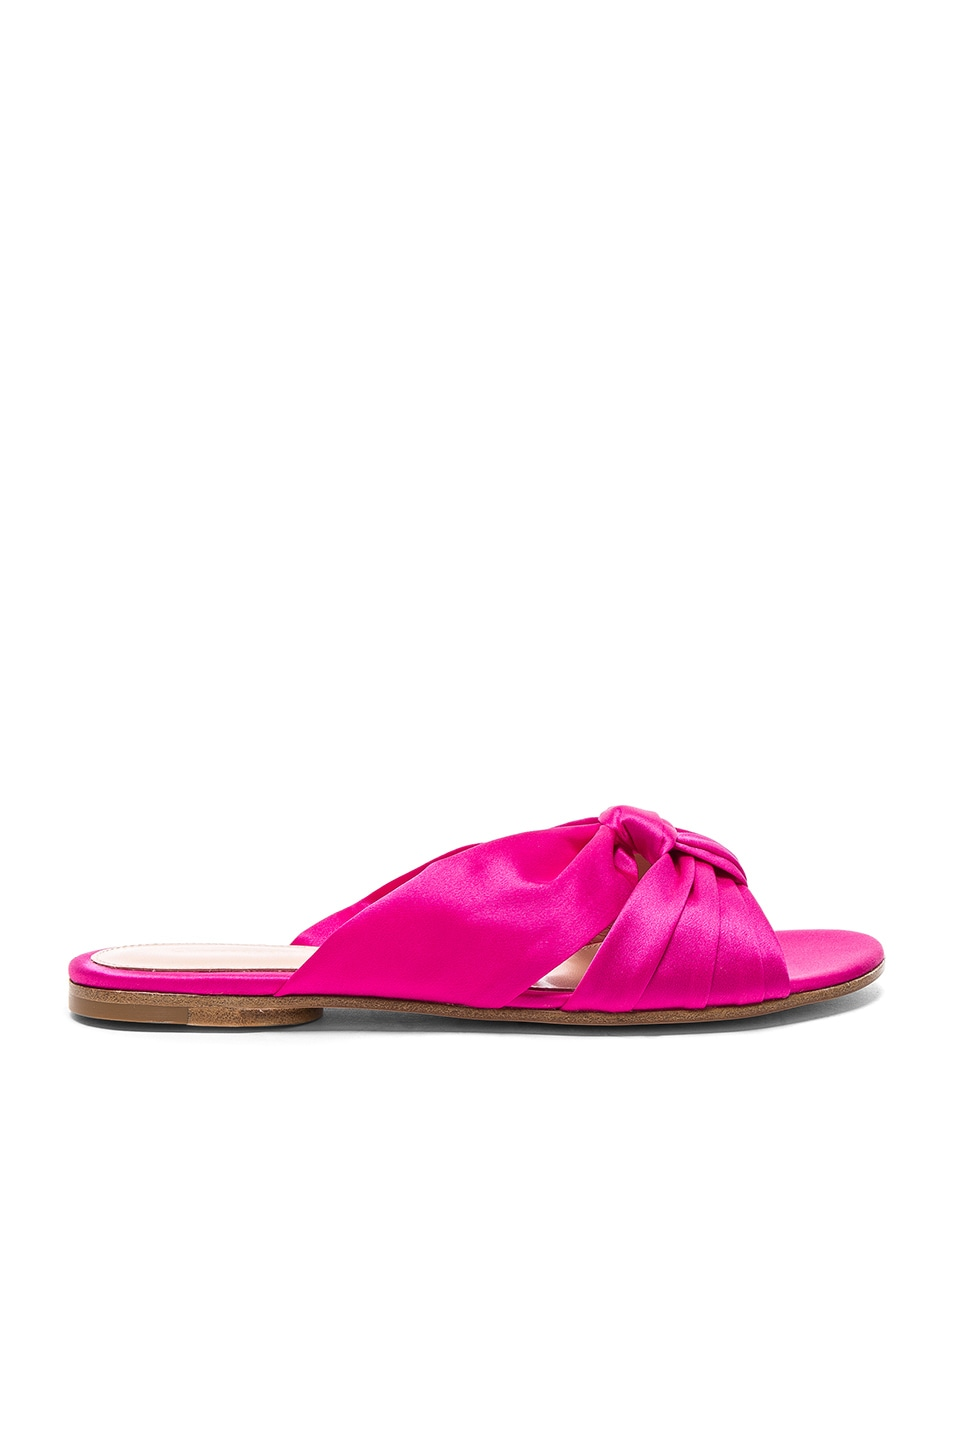 Image 1 of Gianvito Rossi Satin Blair Knot Sandals in Fuchsia